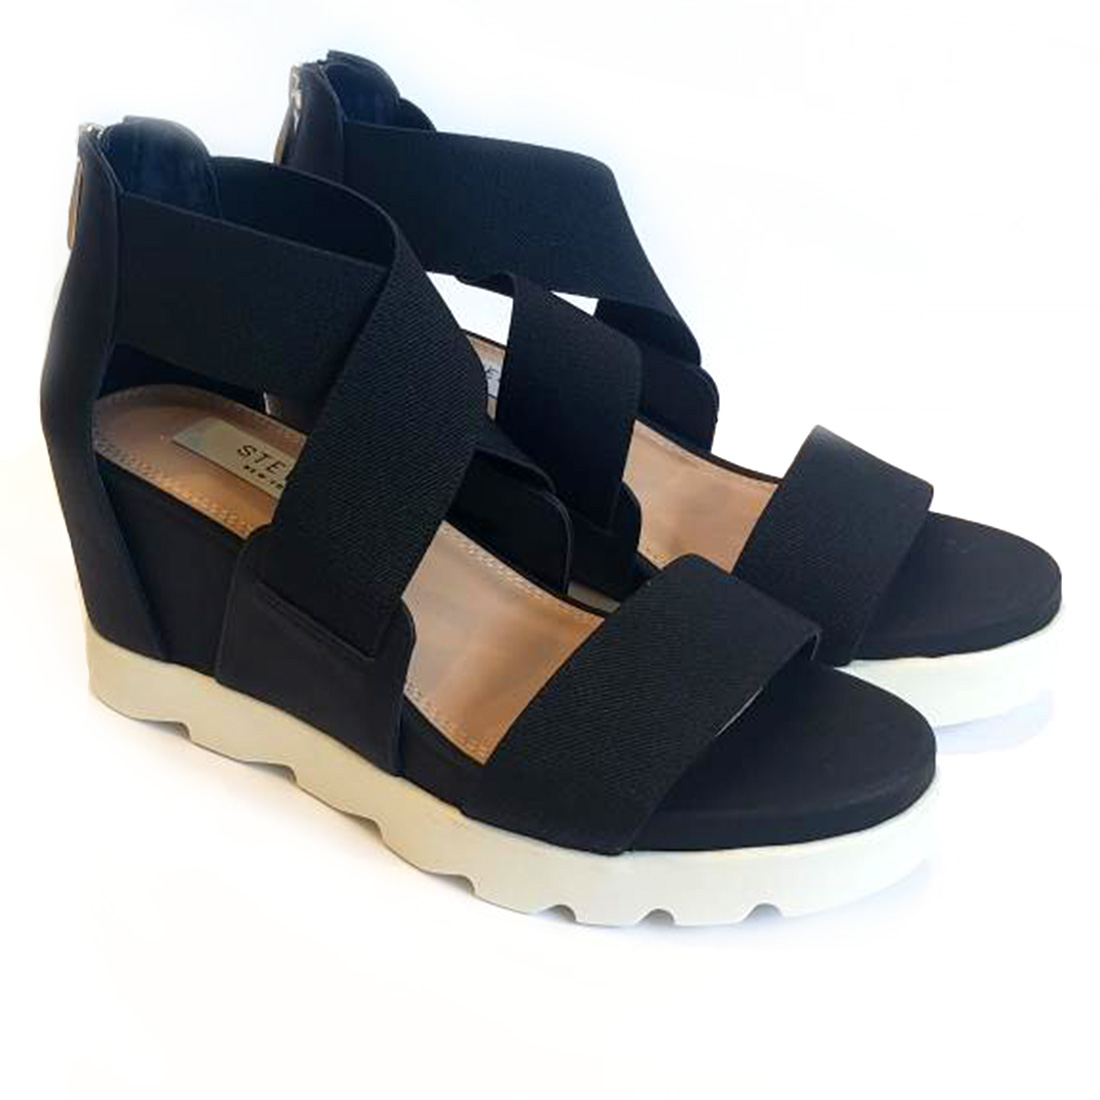 Steven By Steve Madden Sheli Wedge In Black Multi 62014